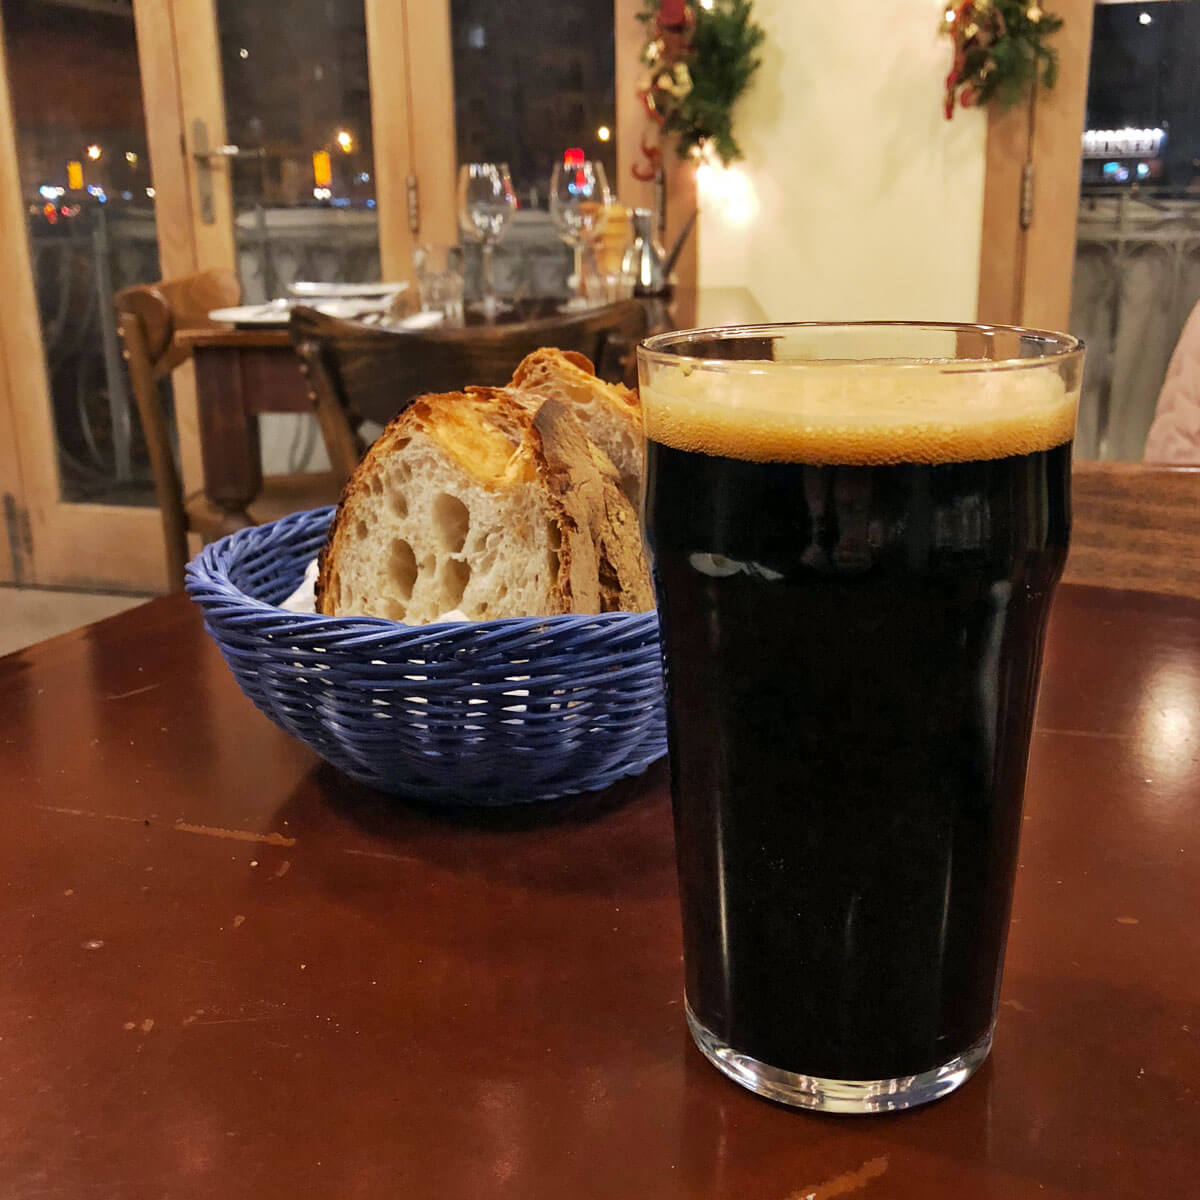 Lacto Milk Stout brewed by Simonds Farsons Cisk Plc.